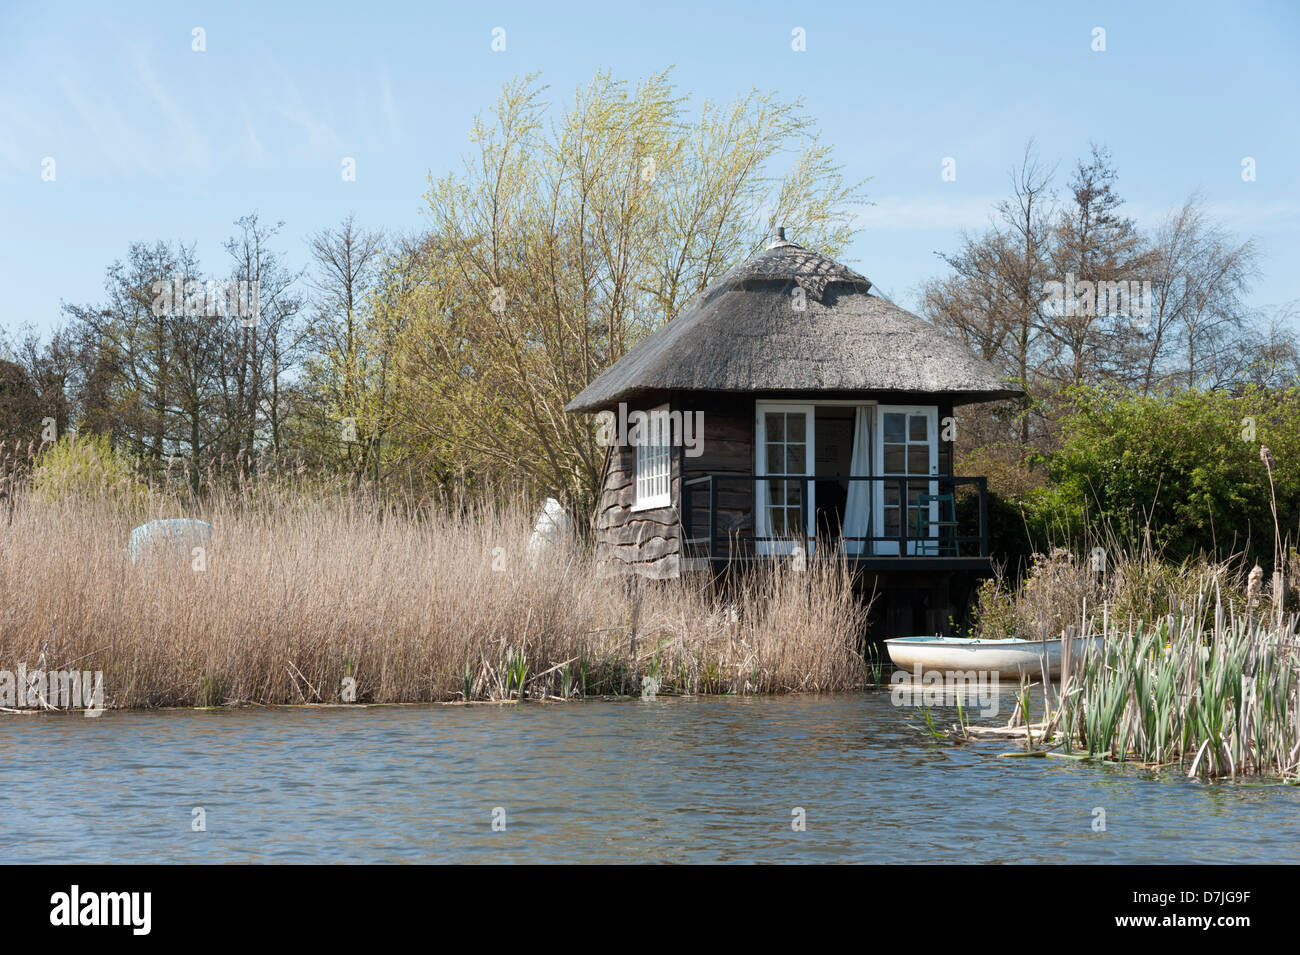 A thatched summerhouse and boat mooring at The Meare Thorpeness near Aldeburgh Suffolk UK - Stock Image